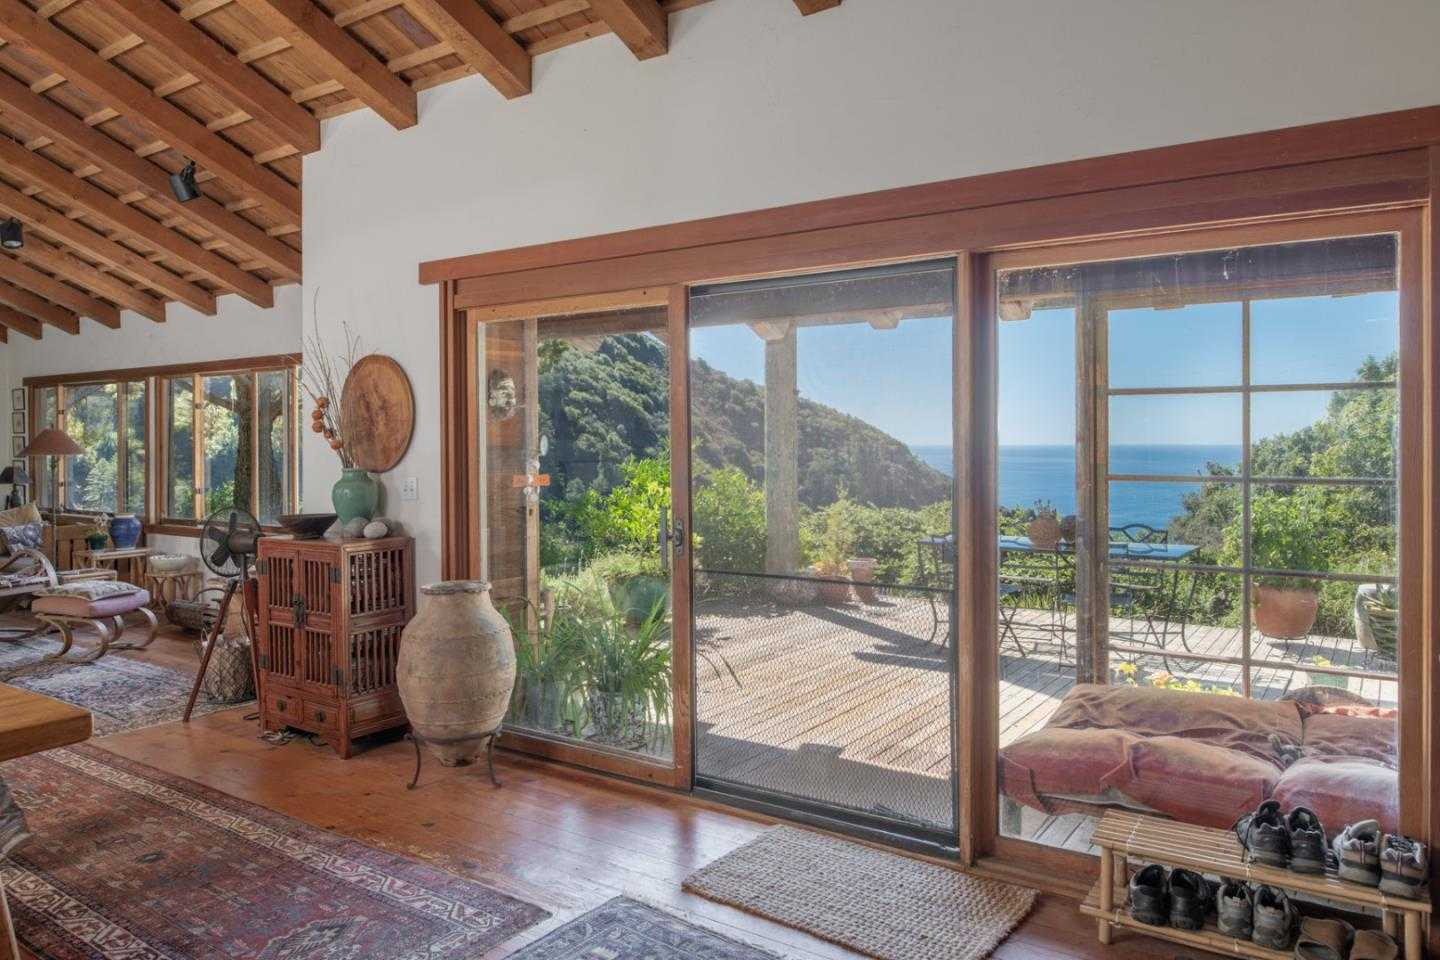 $3,100,000 - 3Br/3Ba -  for Sale in Big Sur